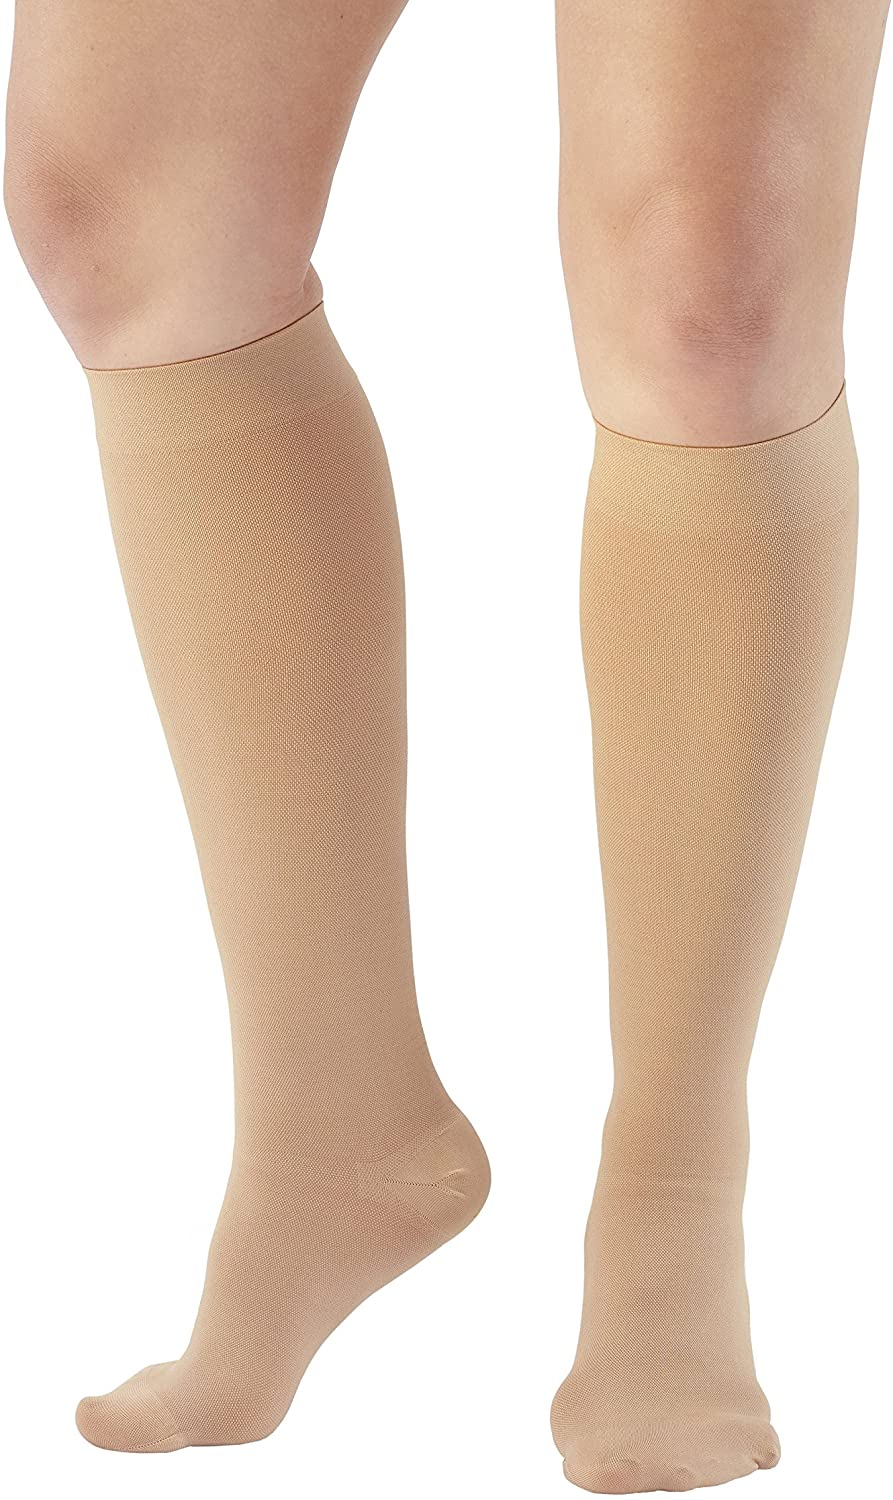 Ames Walker AW Style 300 Medical Support 30 40mmHg CT Knee Highs Beige XL